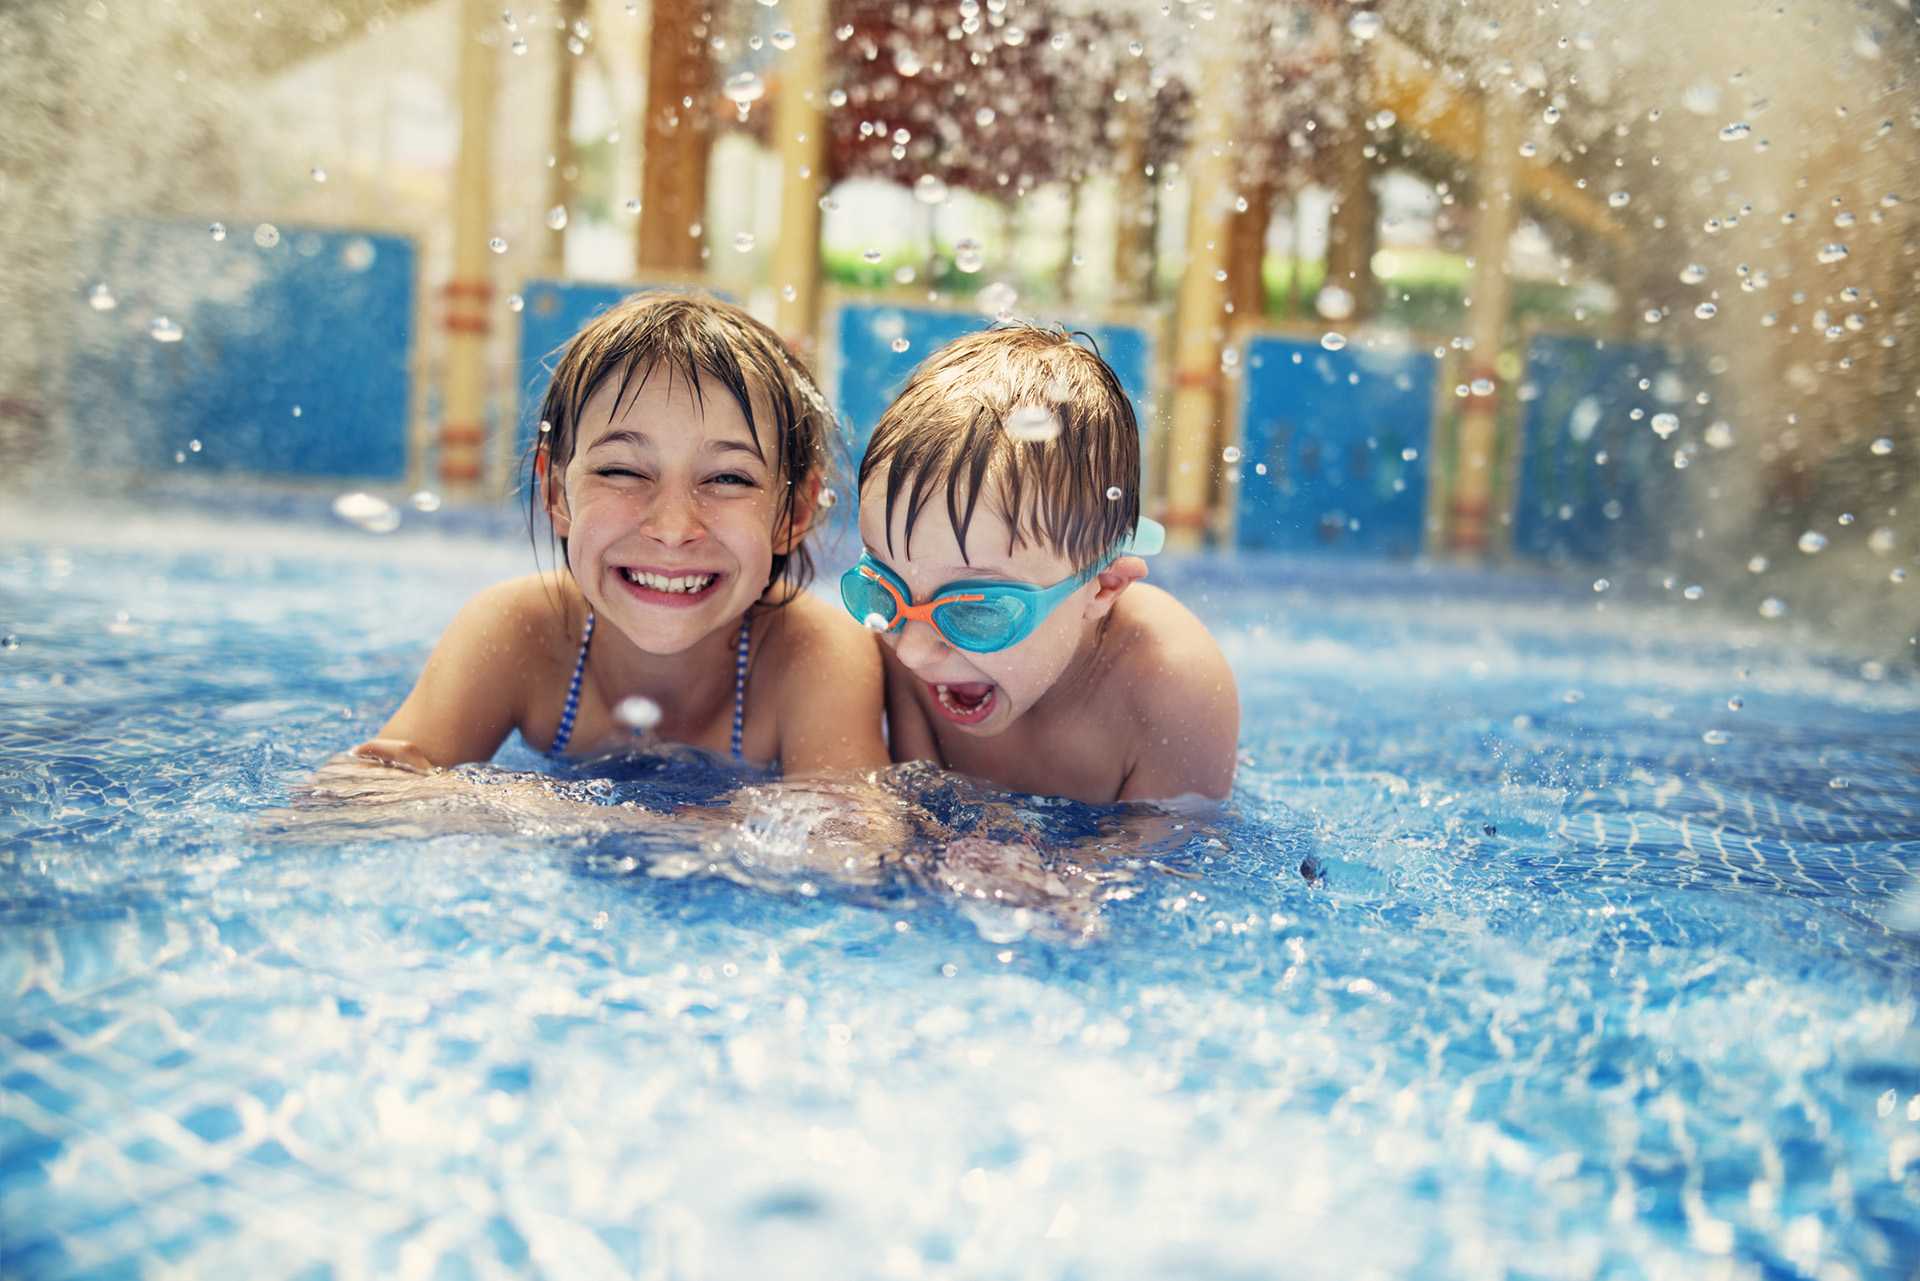 Two children laughing in a swimming pool